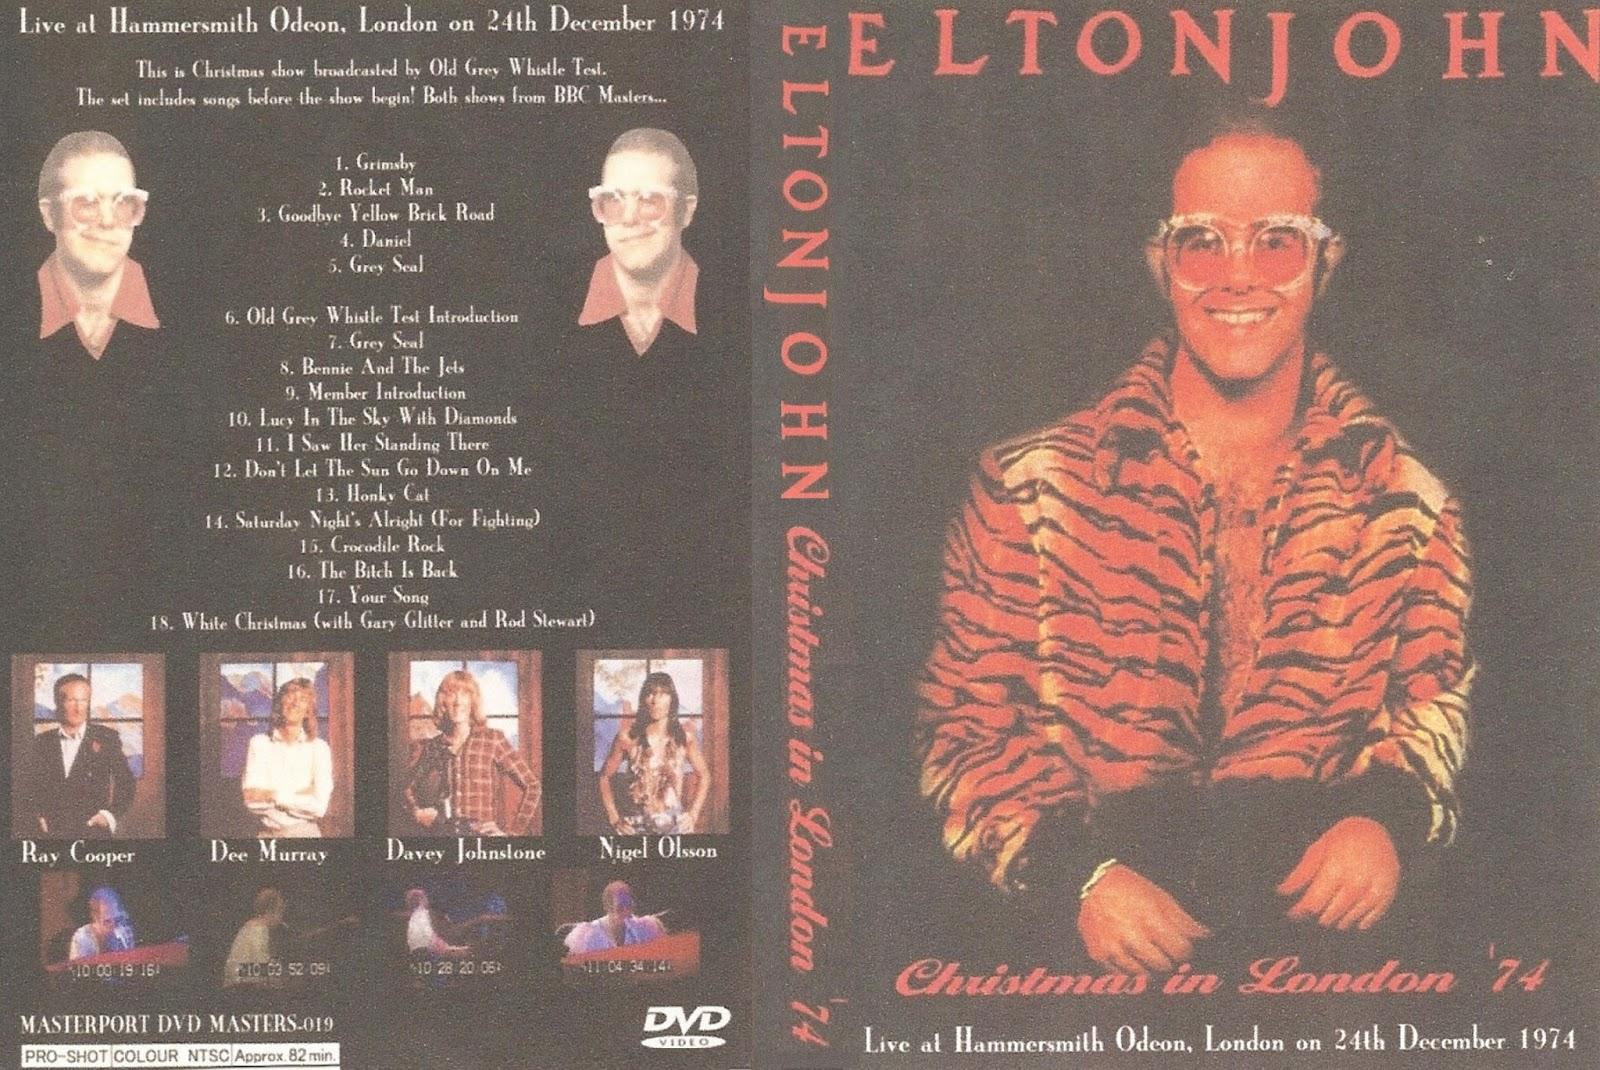 Elton John Christmas Song.T U B E Elton John 1974 12 24 London Uk Dvdfull Pro